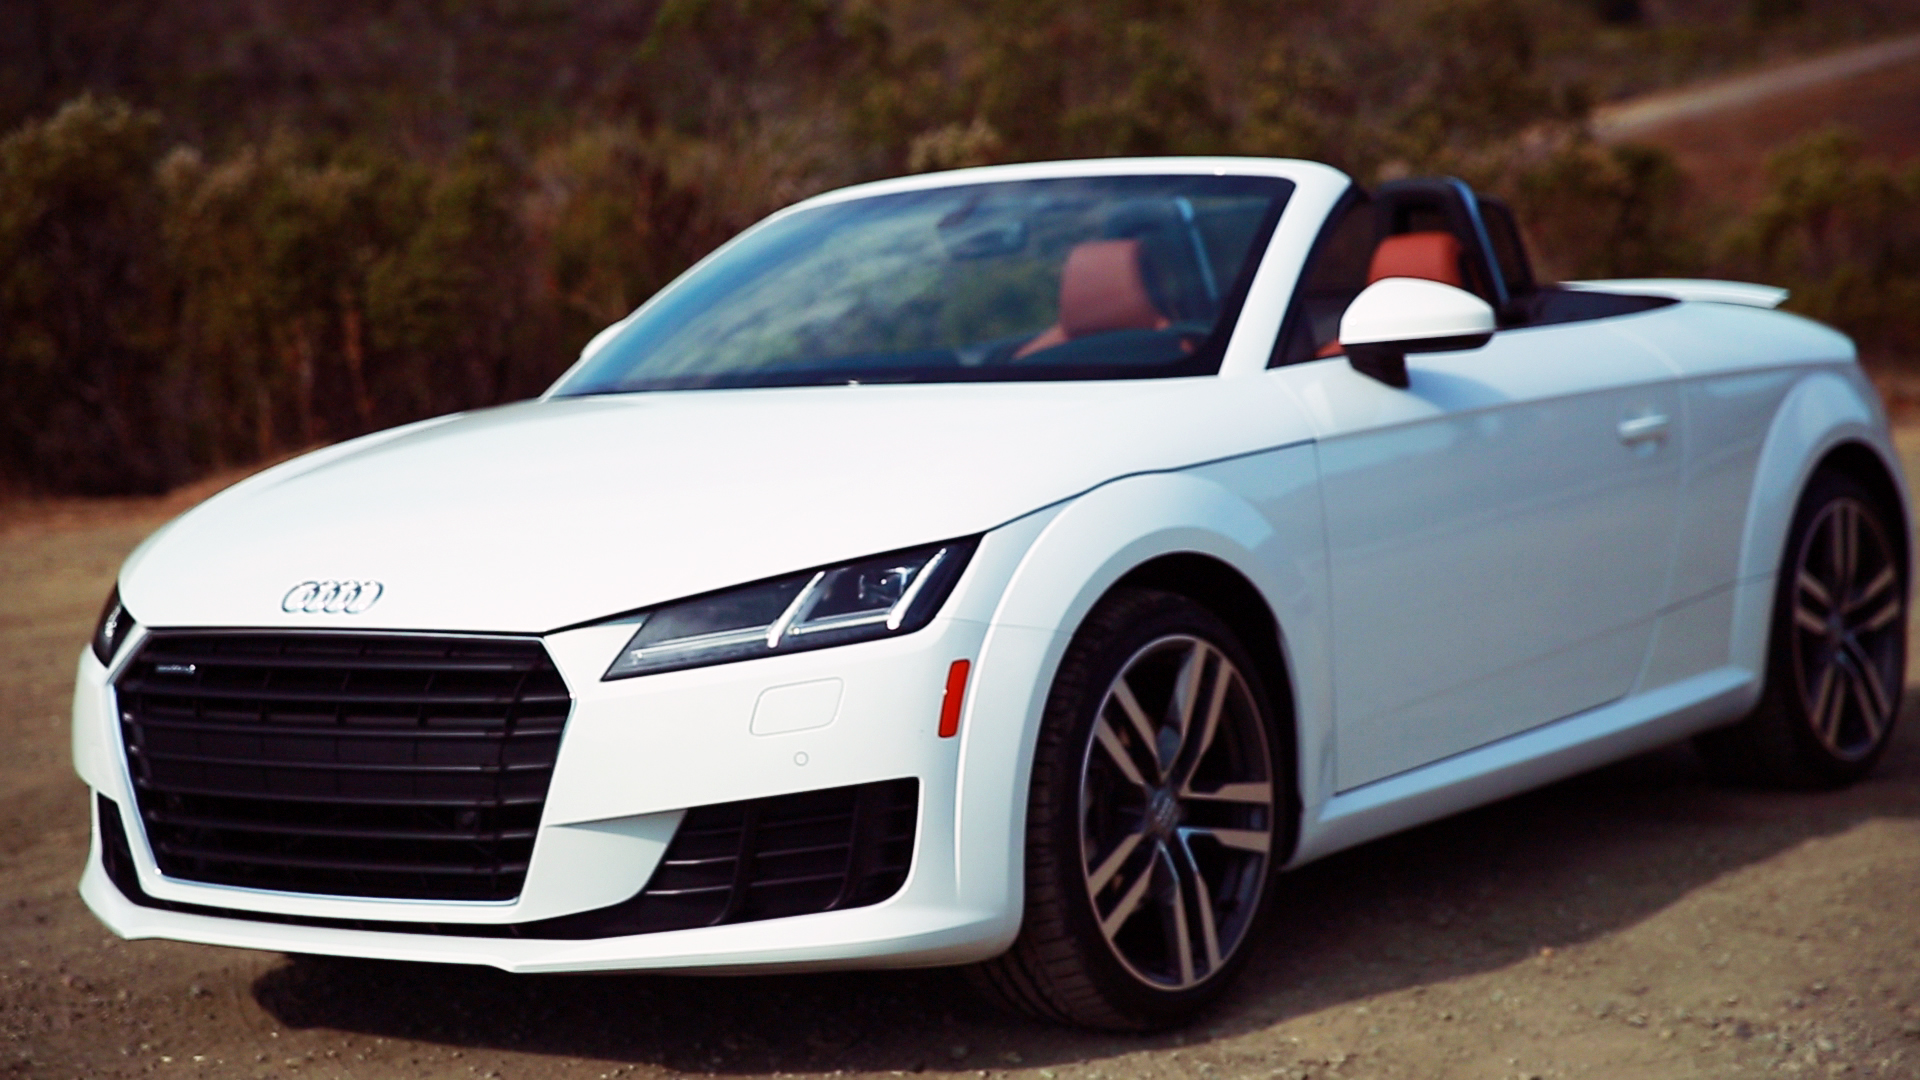 Video: 2016 Audi TT Roadster: All digital, all driver (CNET On Cars, Episode 77)